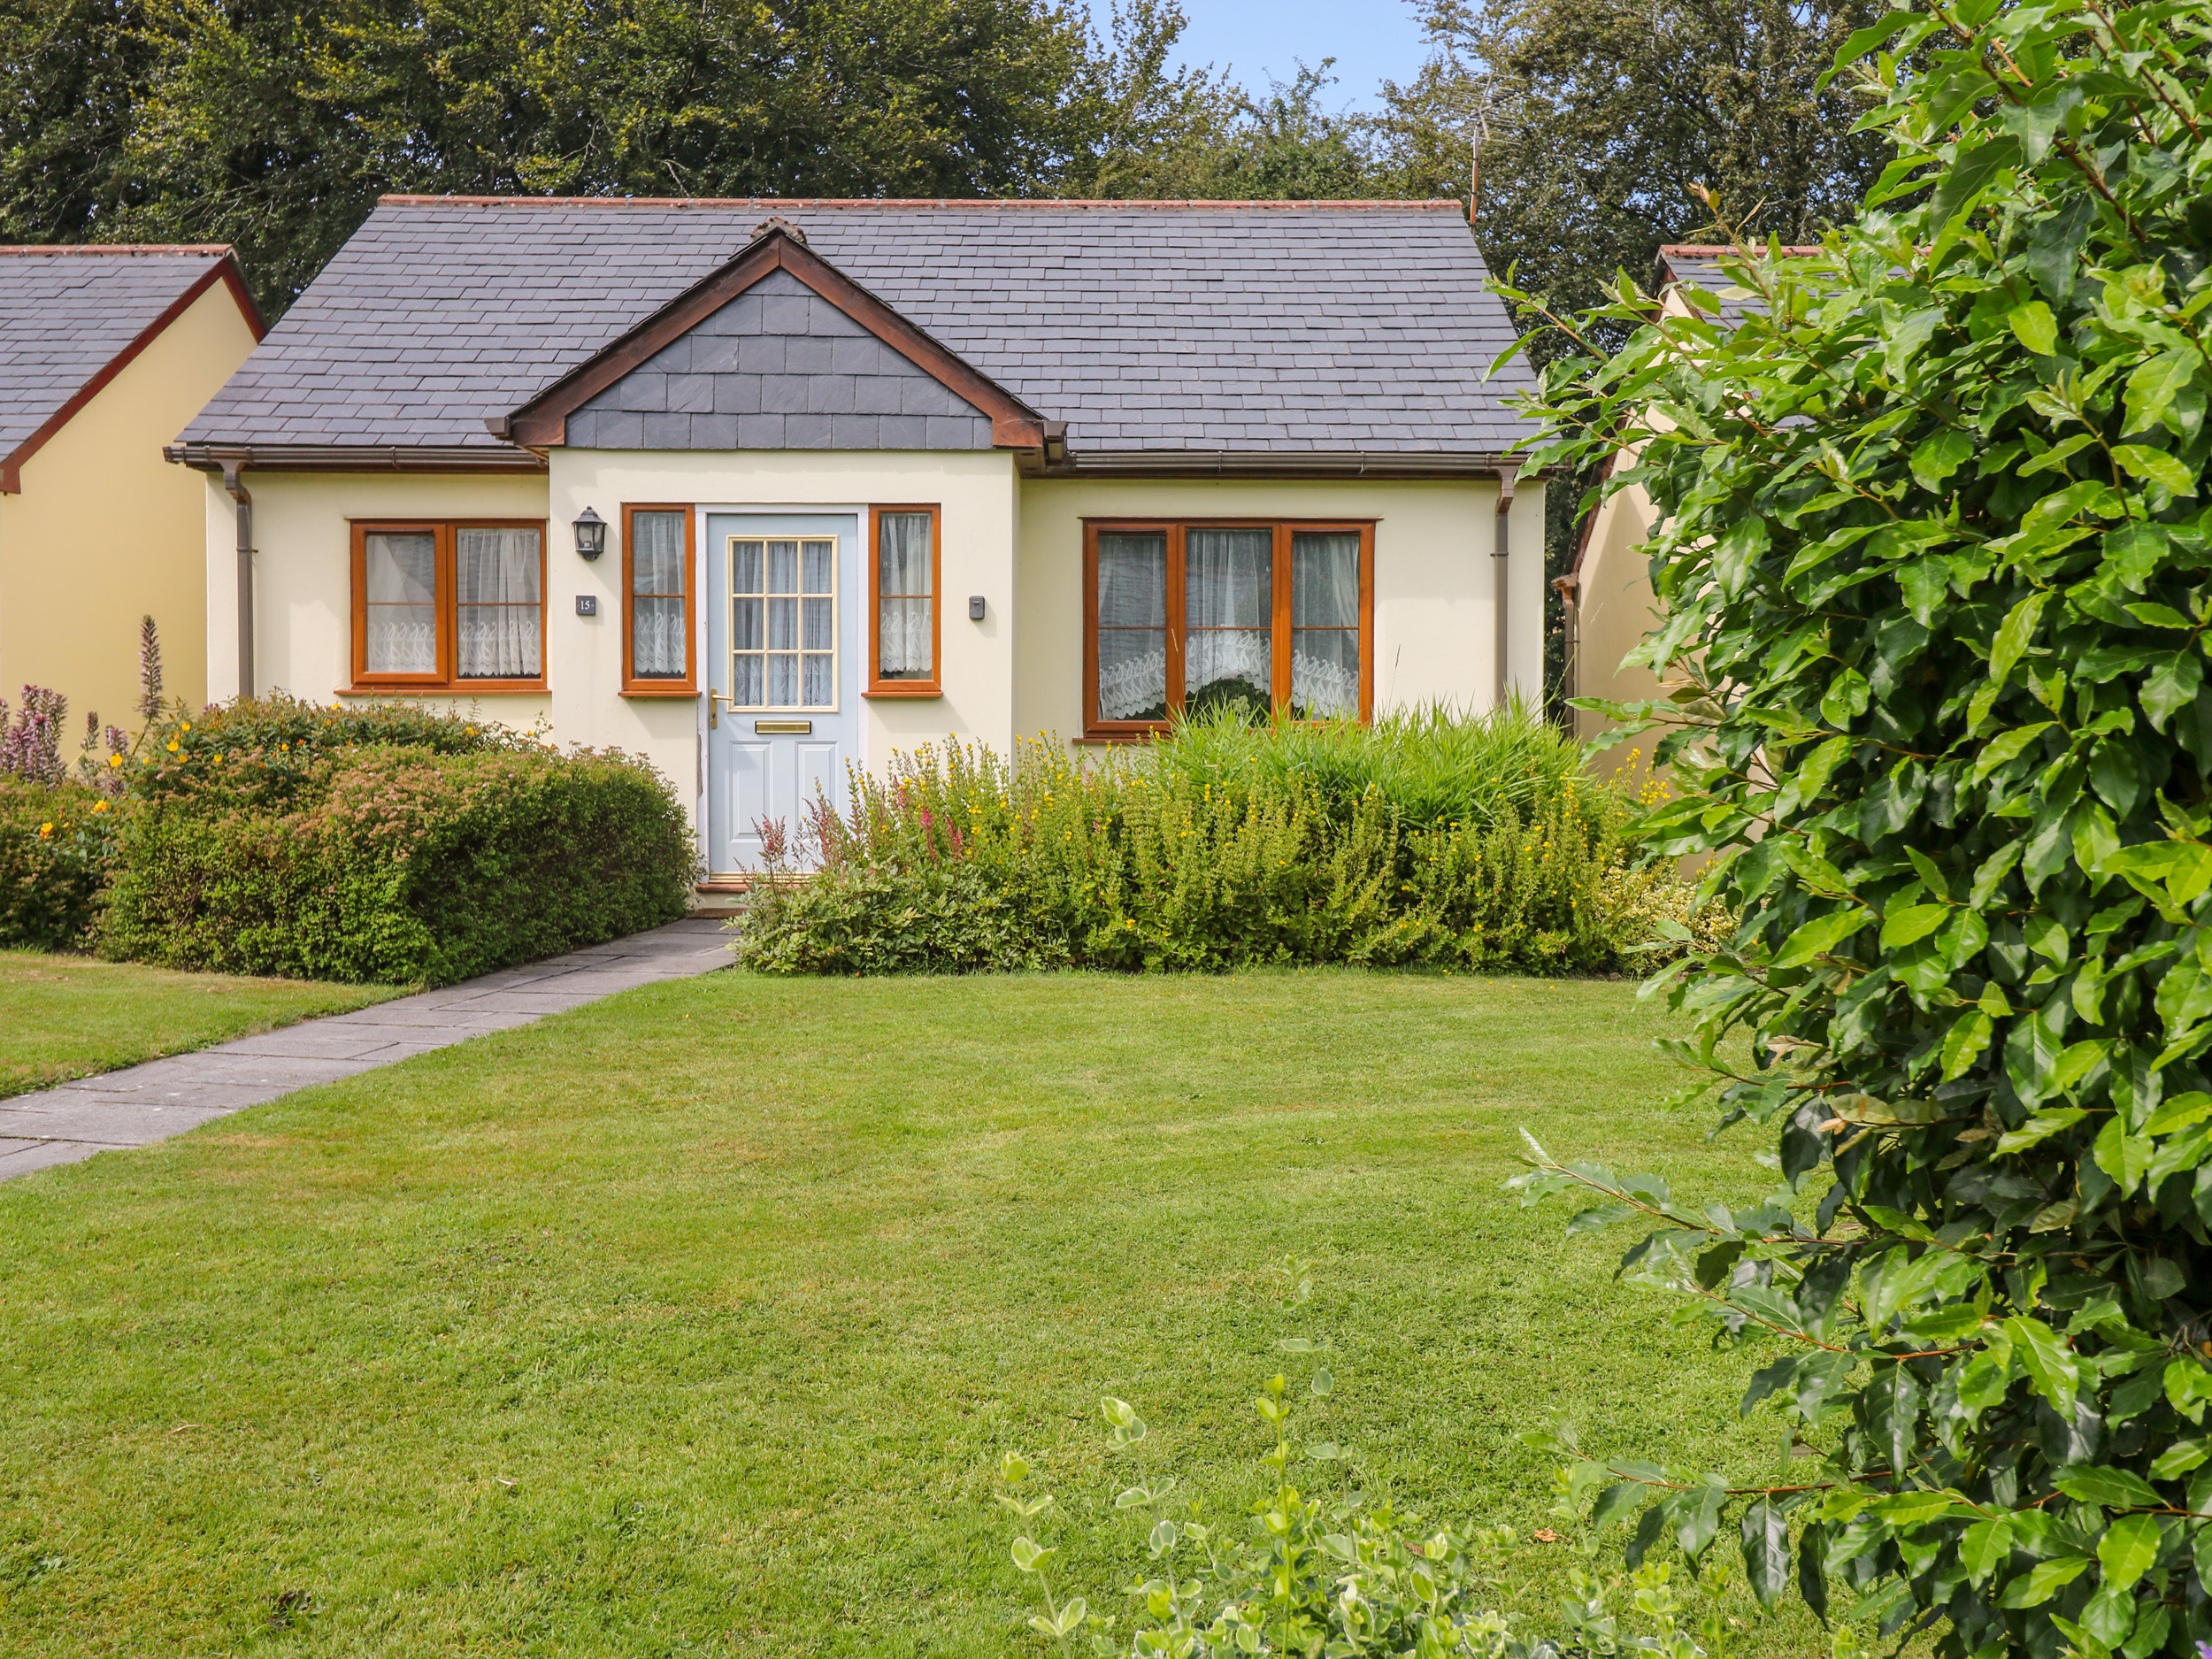 Roofers Retreat, Camelford, Cornwall